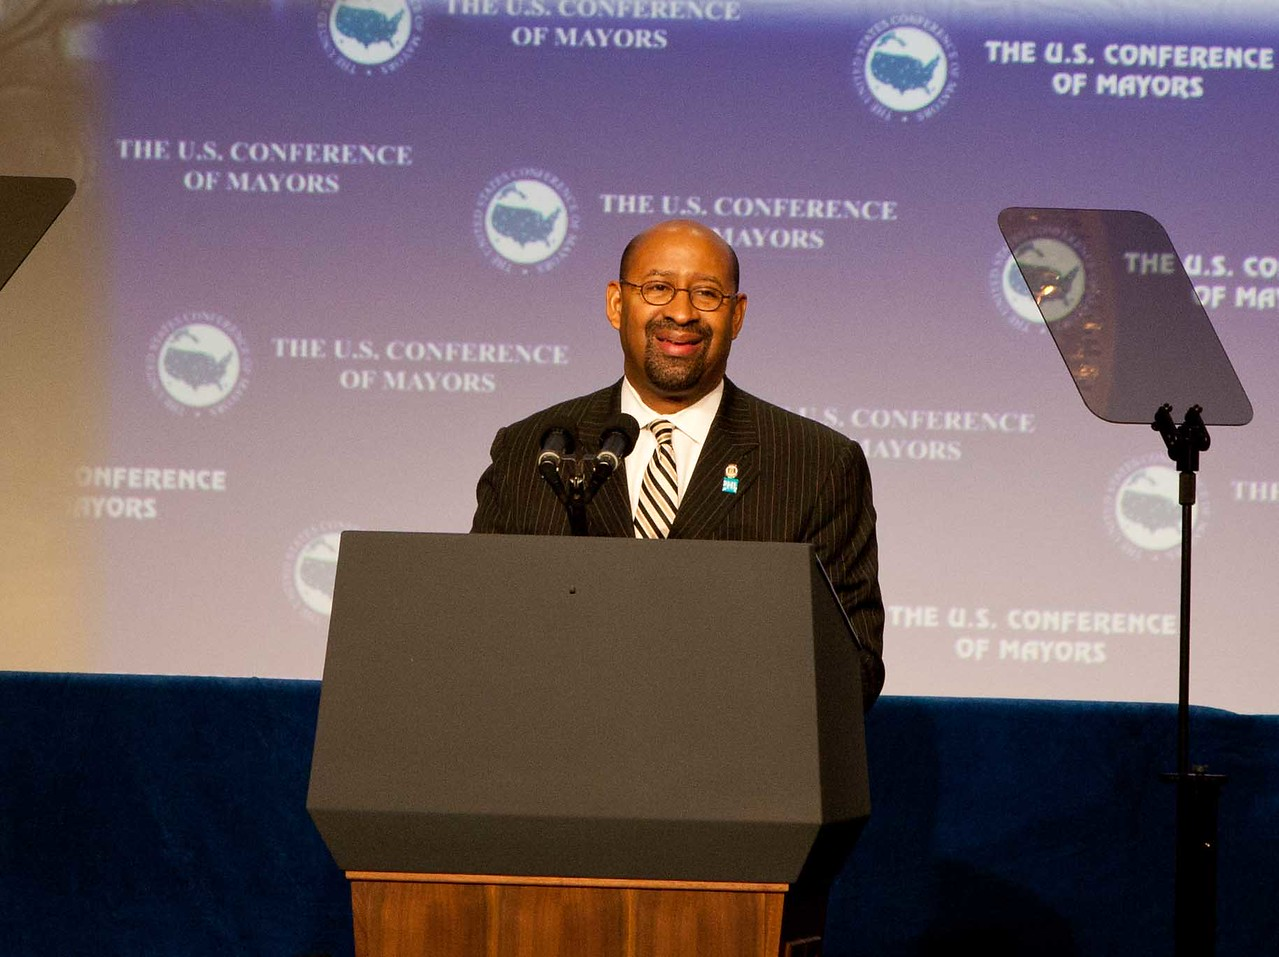 U.S. Conference of Mayors President and Philadelphia Mayor Michael Nutter announces the Mayors Day of Recognition for National Service in Washington, DC, on Jan. 17, 2013.